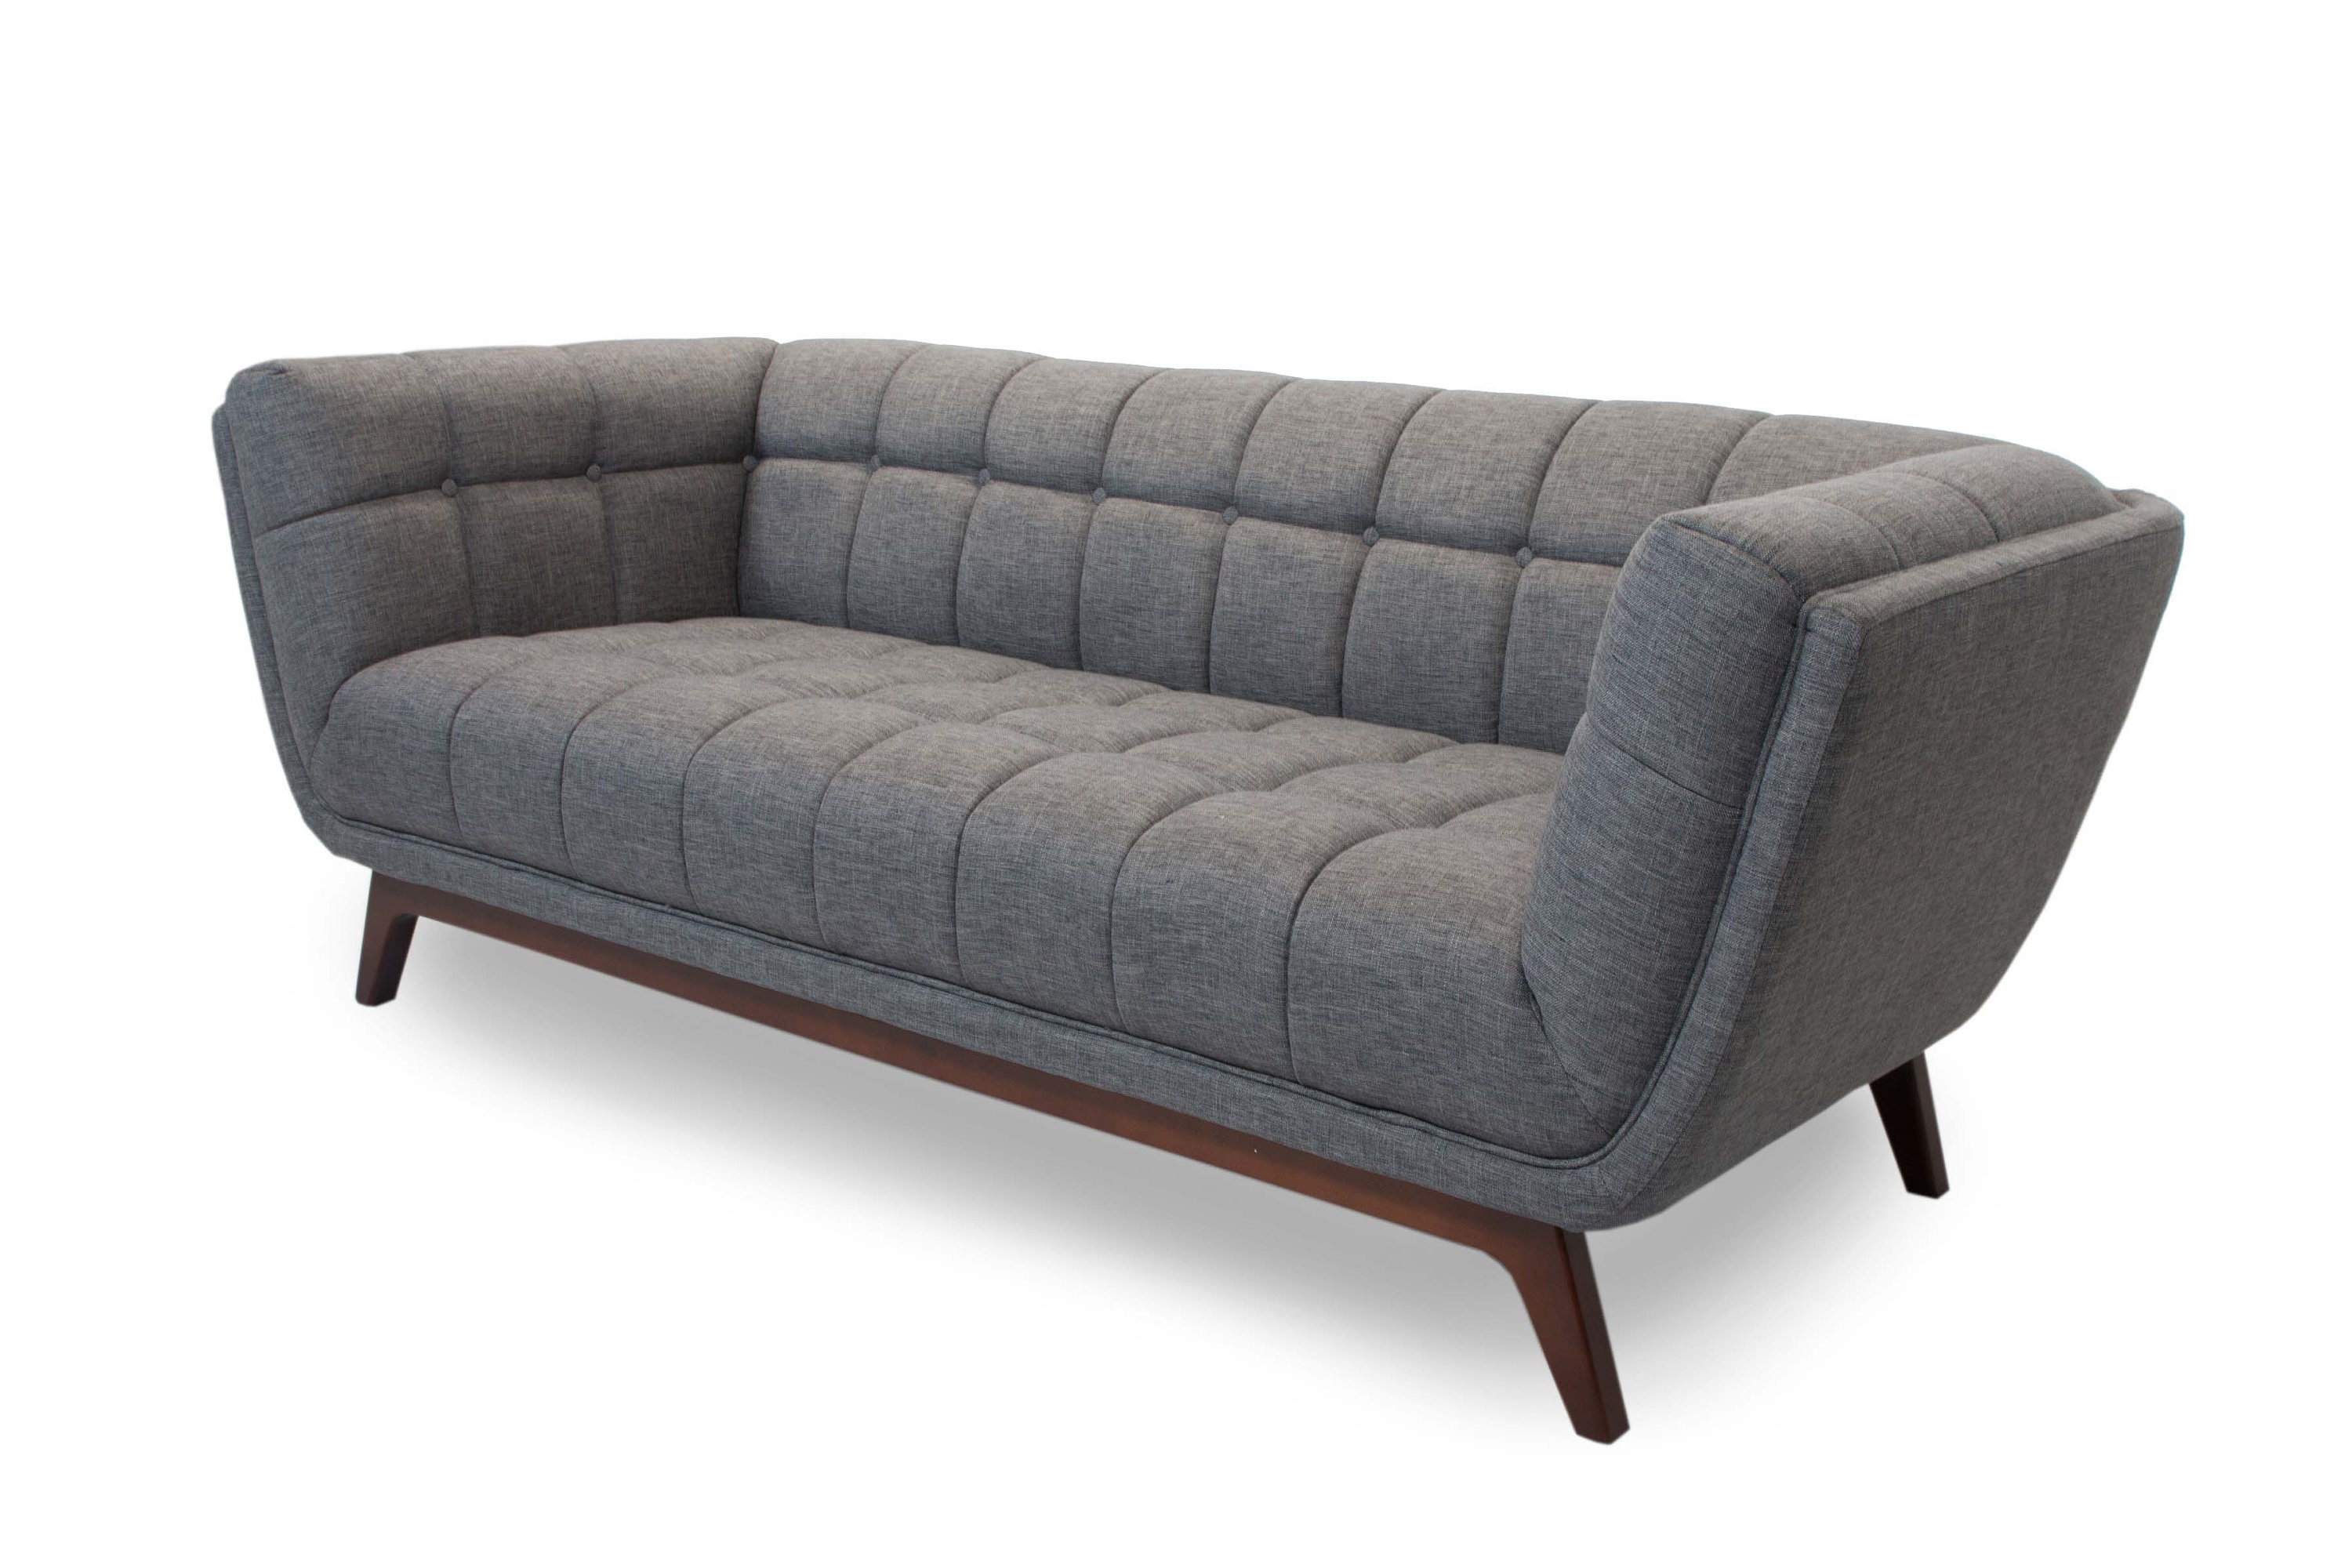 Mid Century Modern Sofa Contemporary Style Tufted Couch Etsy